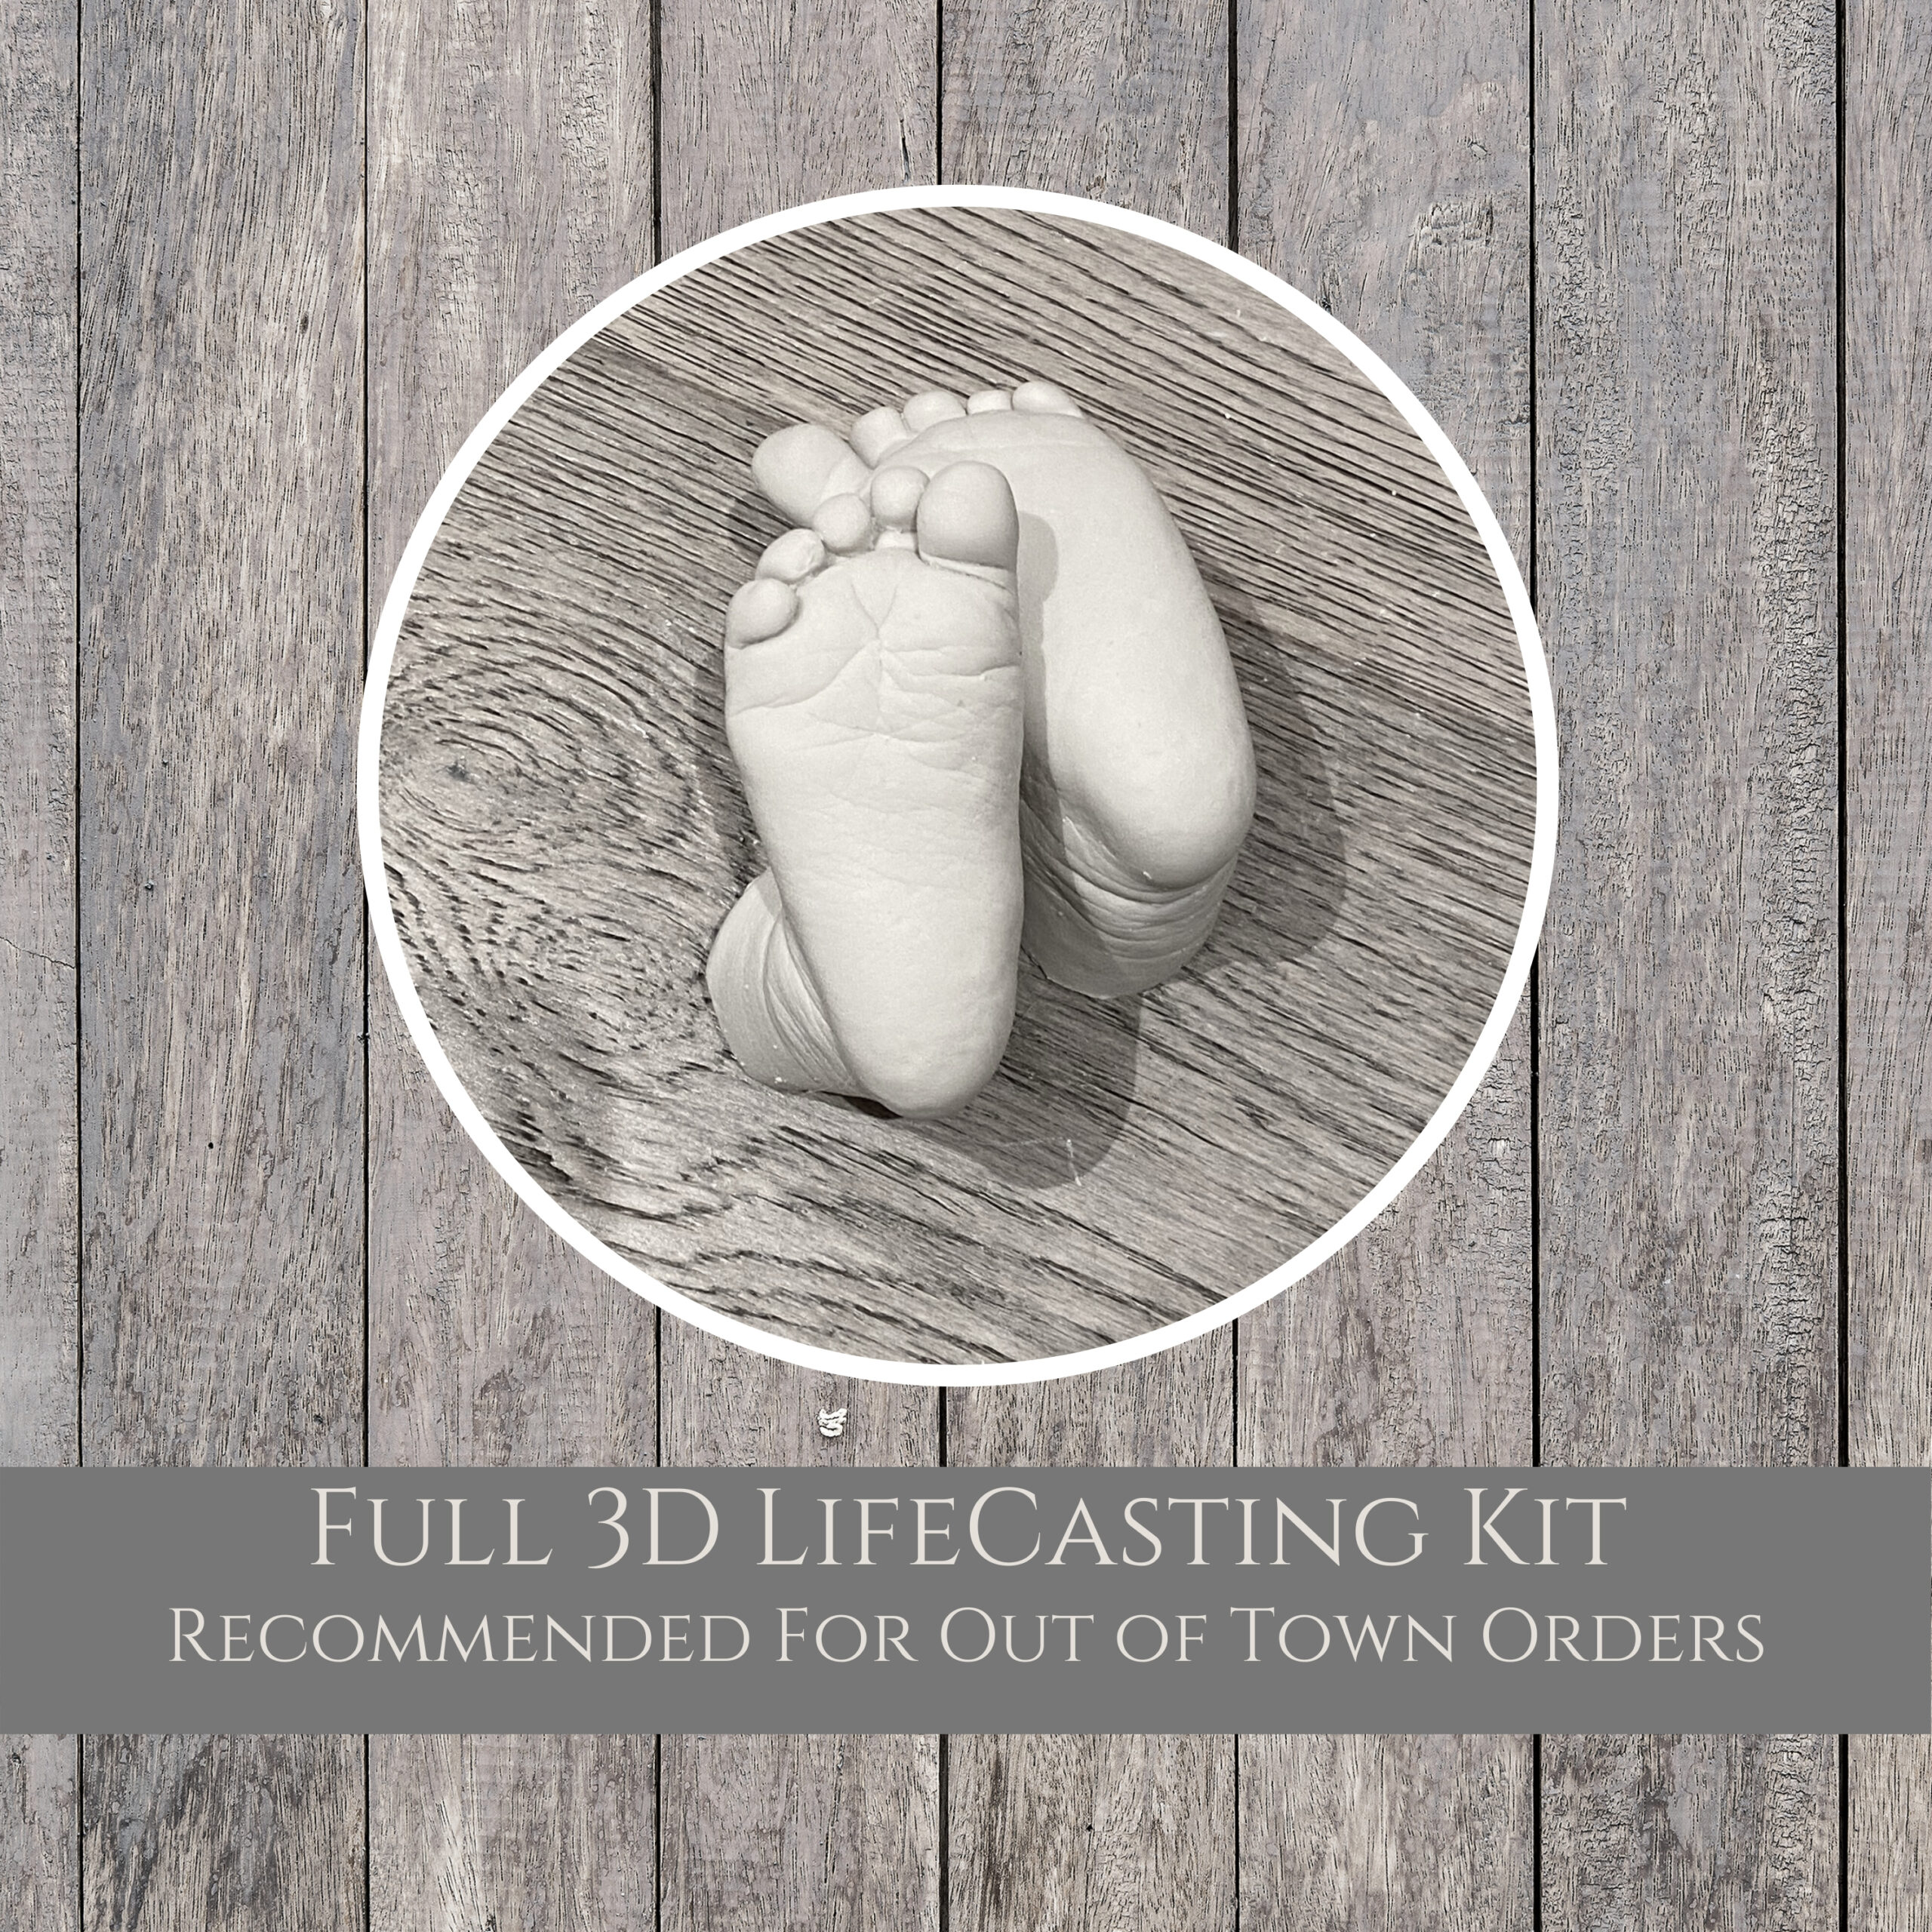 diy full 3d lifecastinng kit